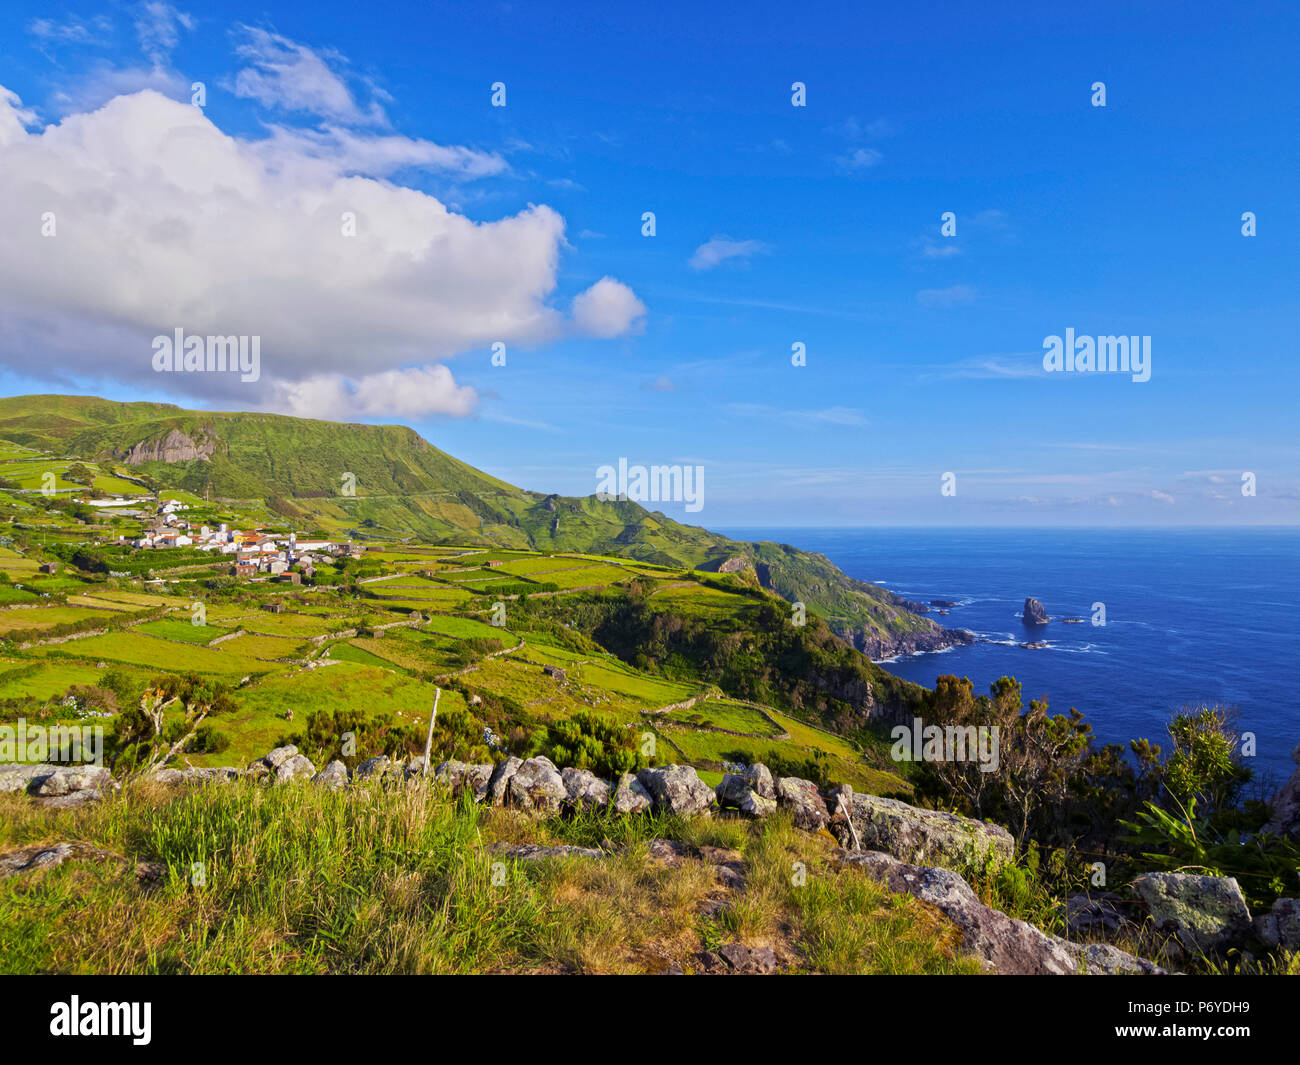 Portugal, Azores, Flores, Landscape with Mosteiro Village and Rocha dos Bordoes. - Stock Image